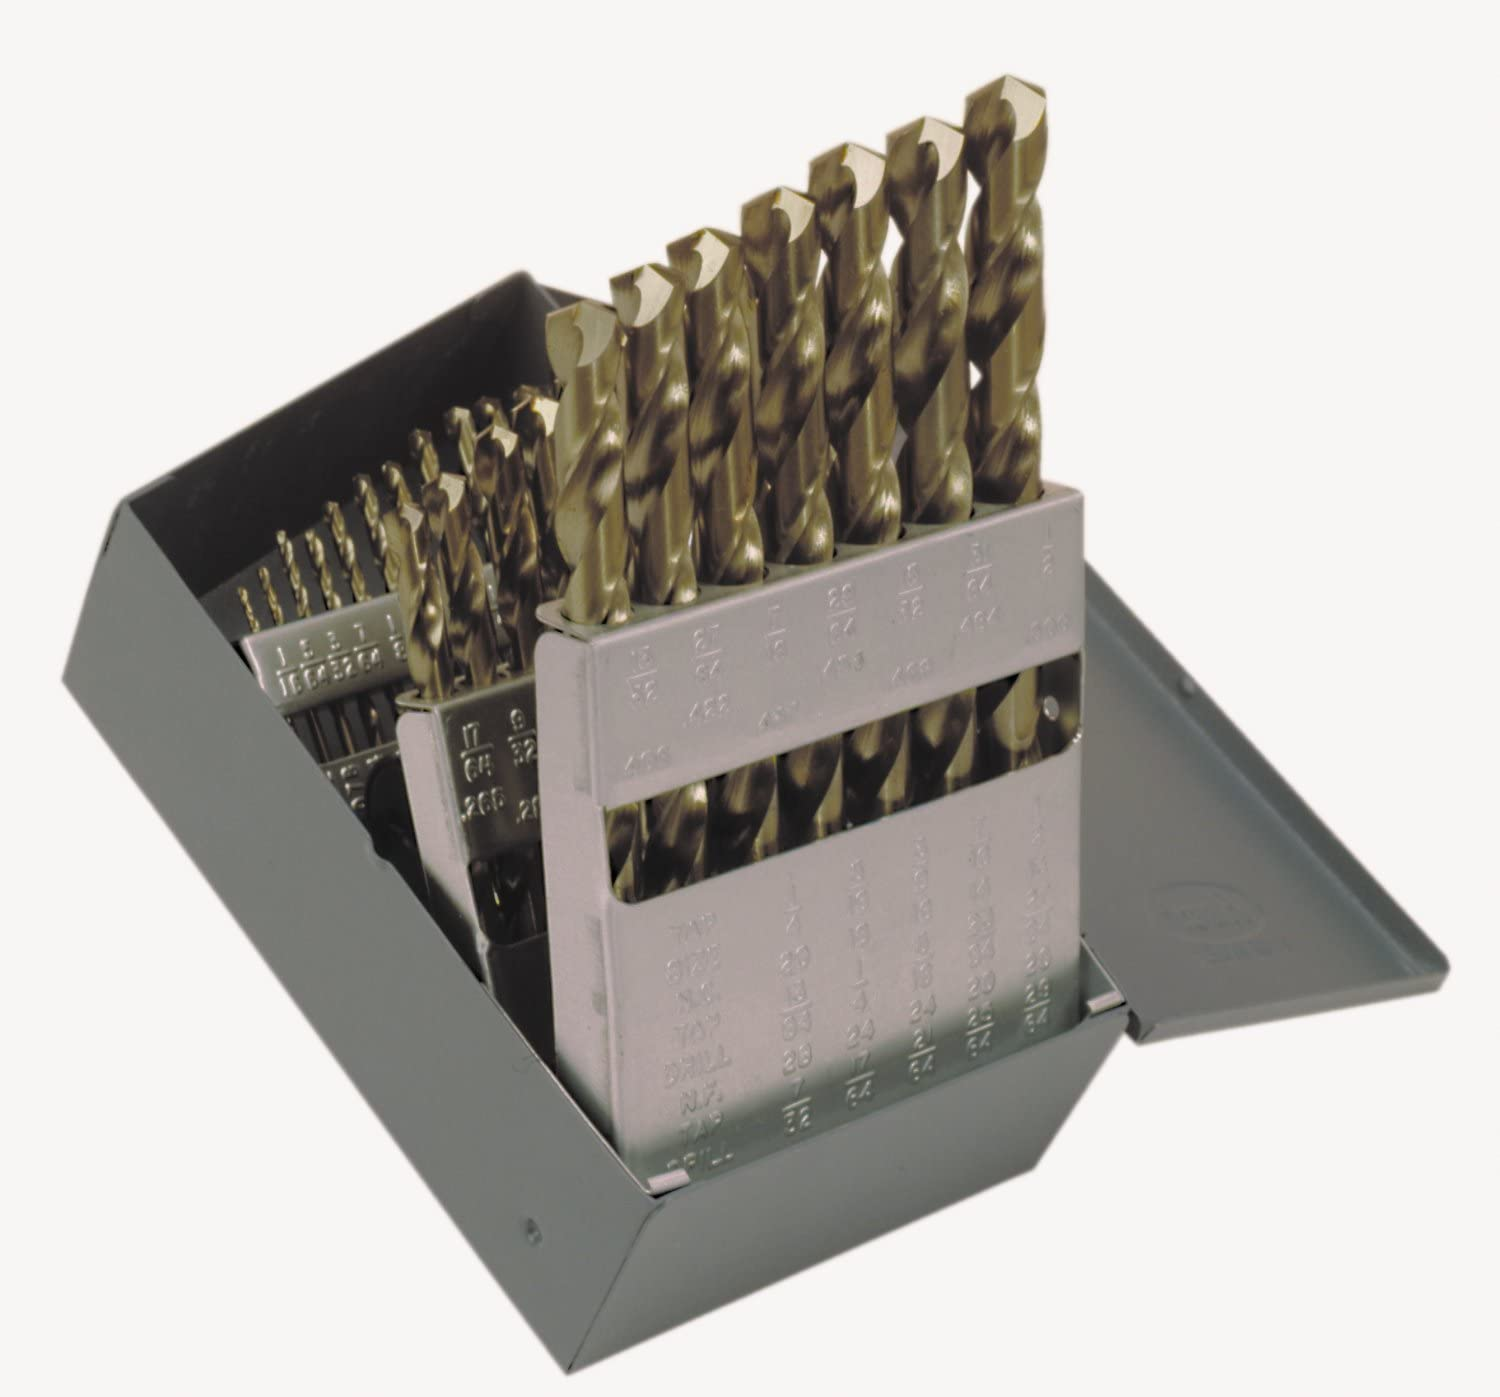 1//4 /& Letter Size E Pack of 1 Bright Cleveland 2727 Style Carbide Tipped Jobbers Drill Bit Uncoated 118 Degree Conventional Point Round Shank